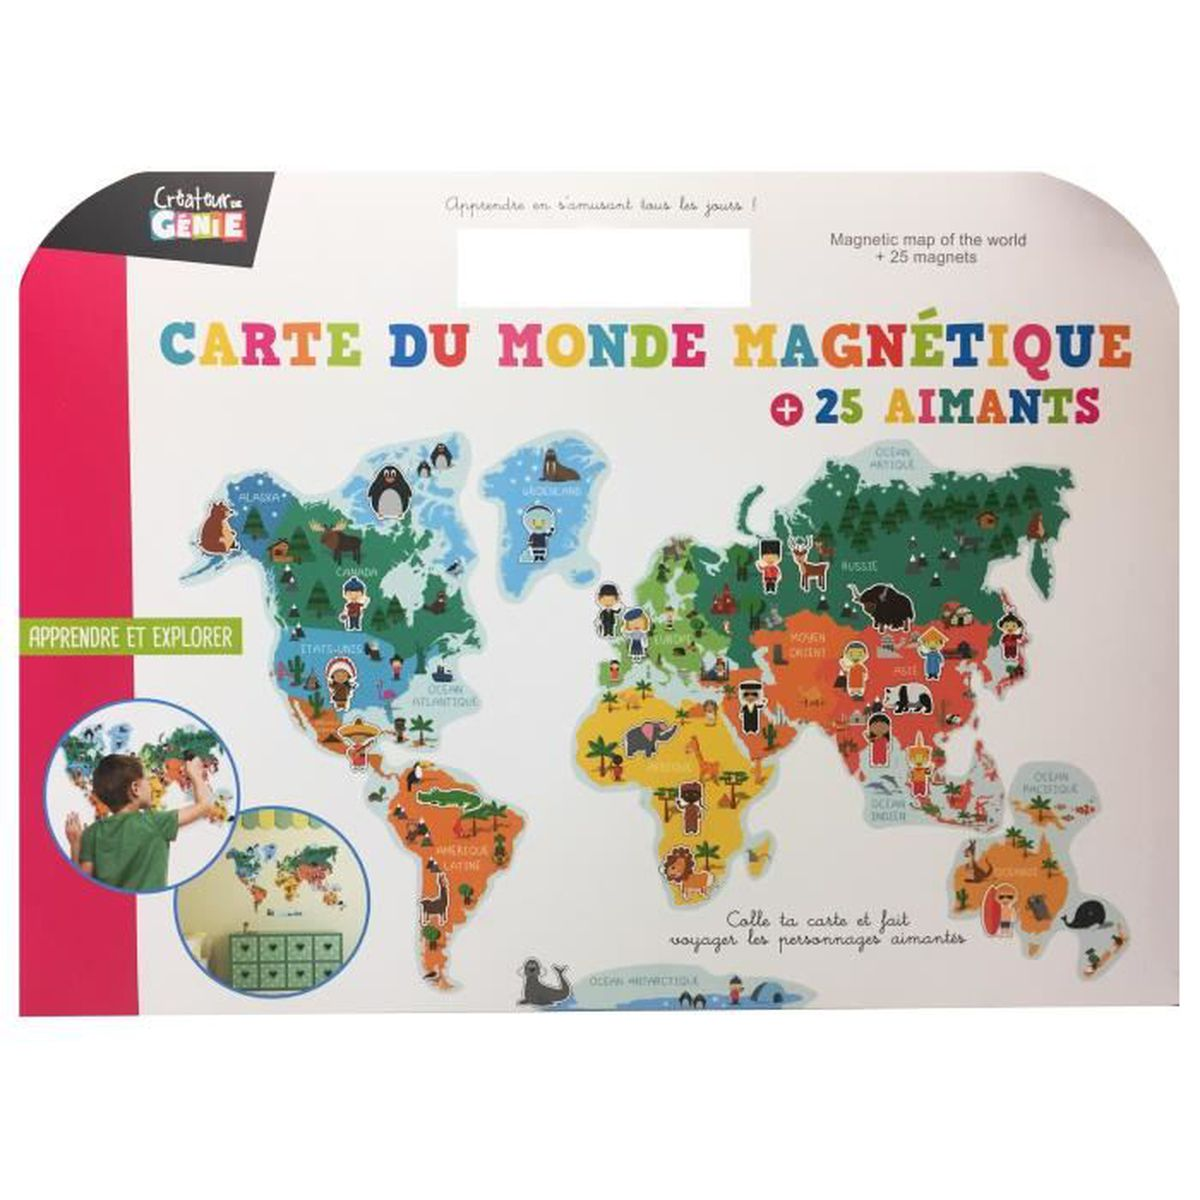 CARTE DU MONDE MAGNETIQUE 25 AIMANTS PERSONNAGES ANIMAUX A PLACER